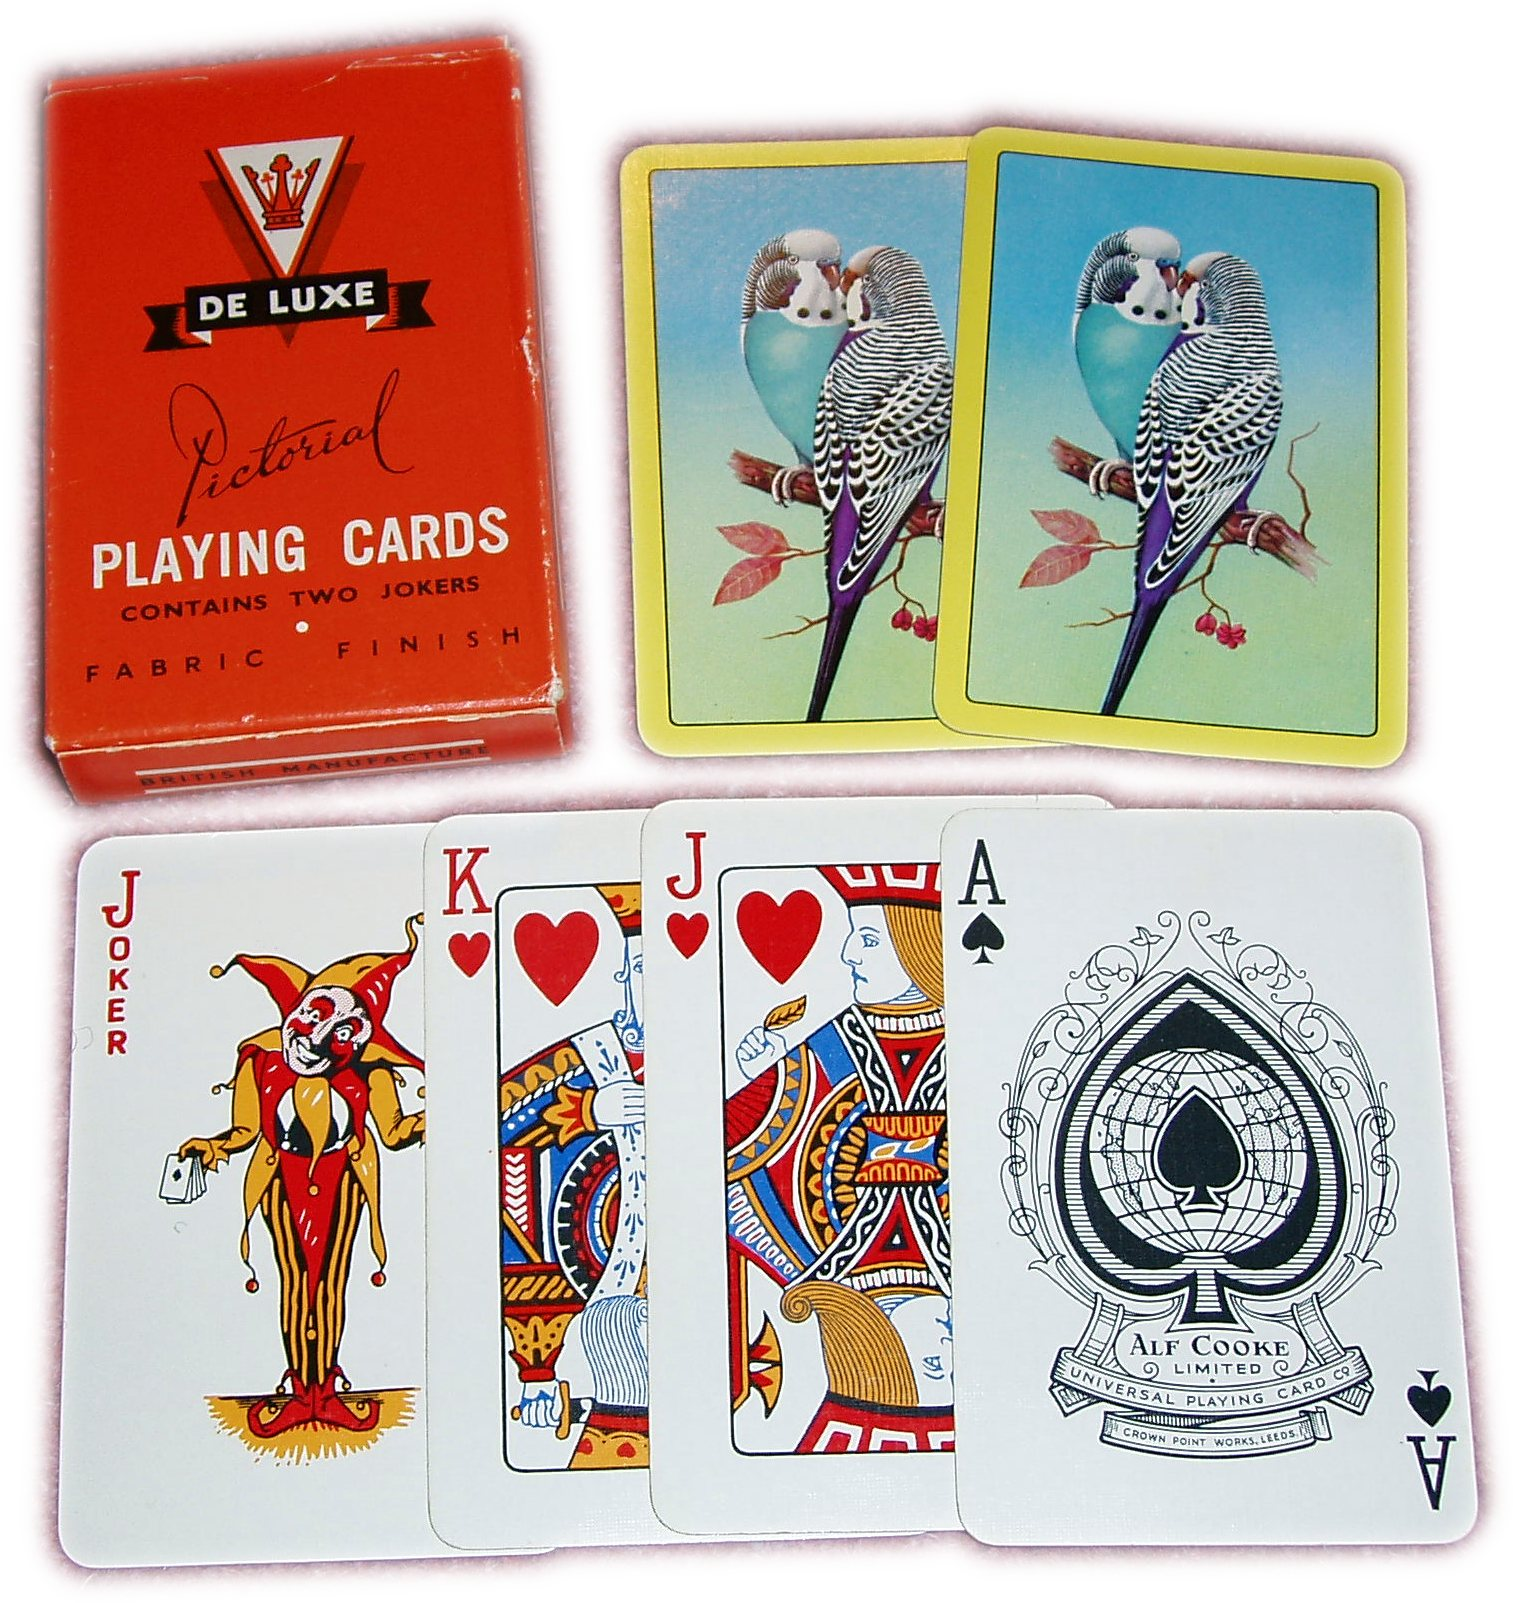 Alf Cooke Pictorial Playing Cards, c.1960